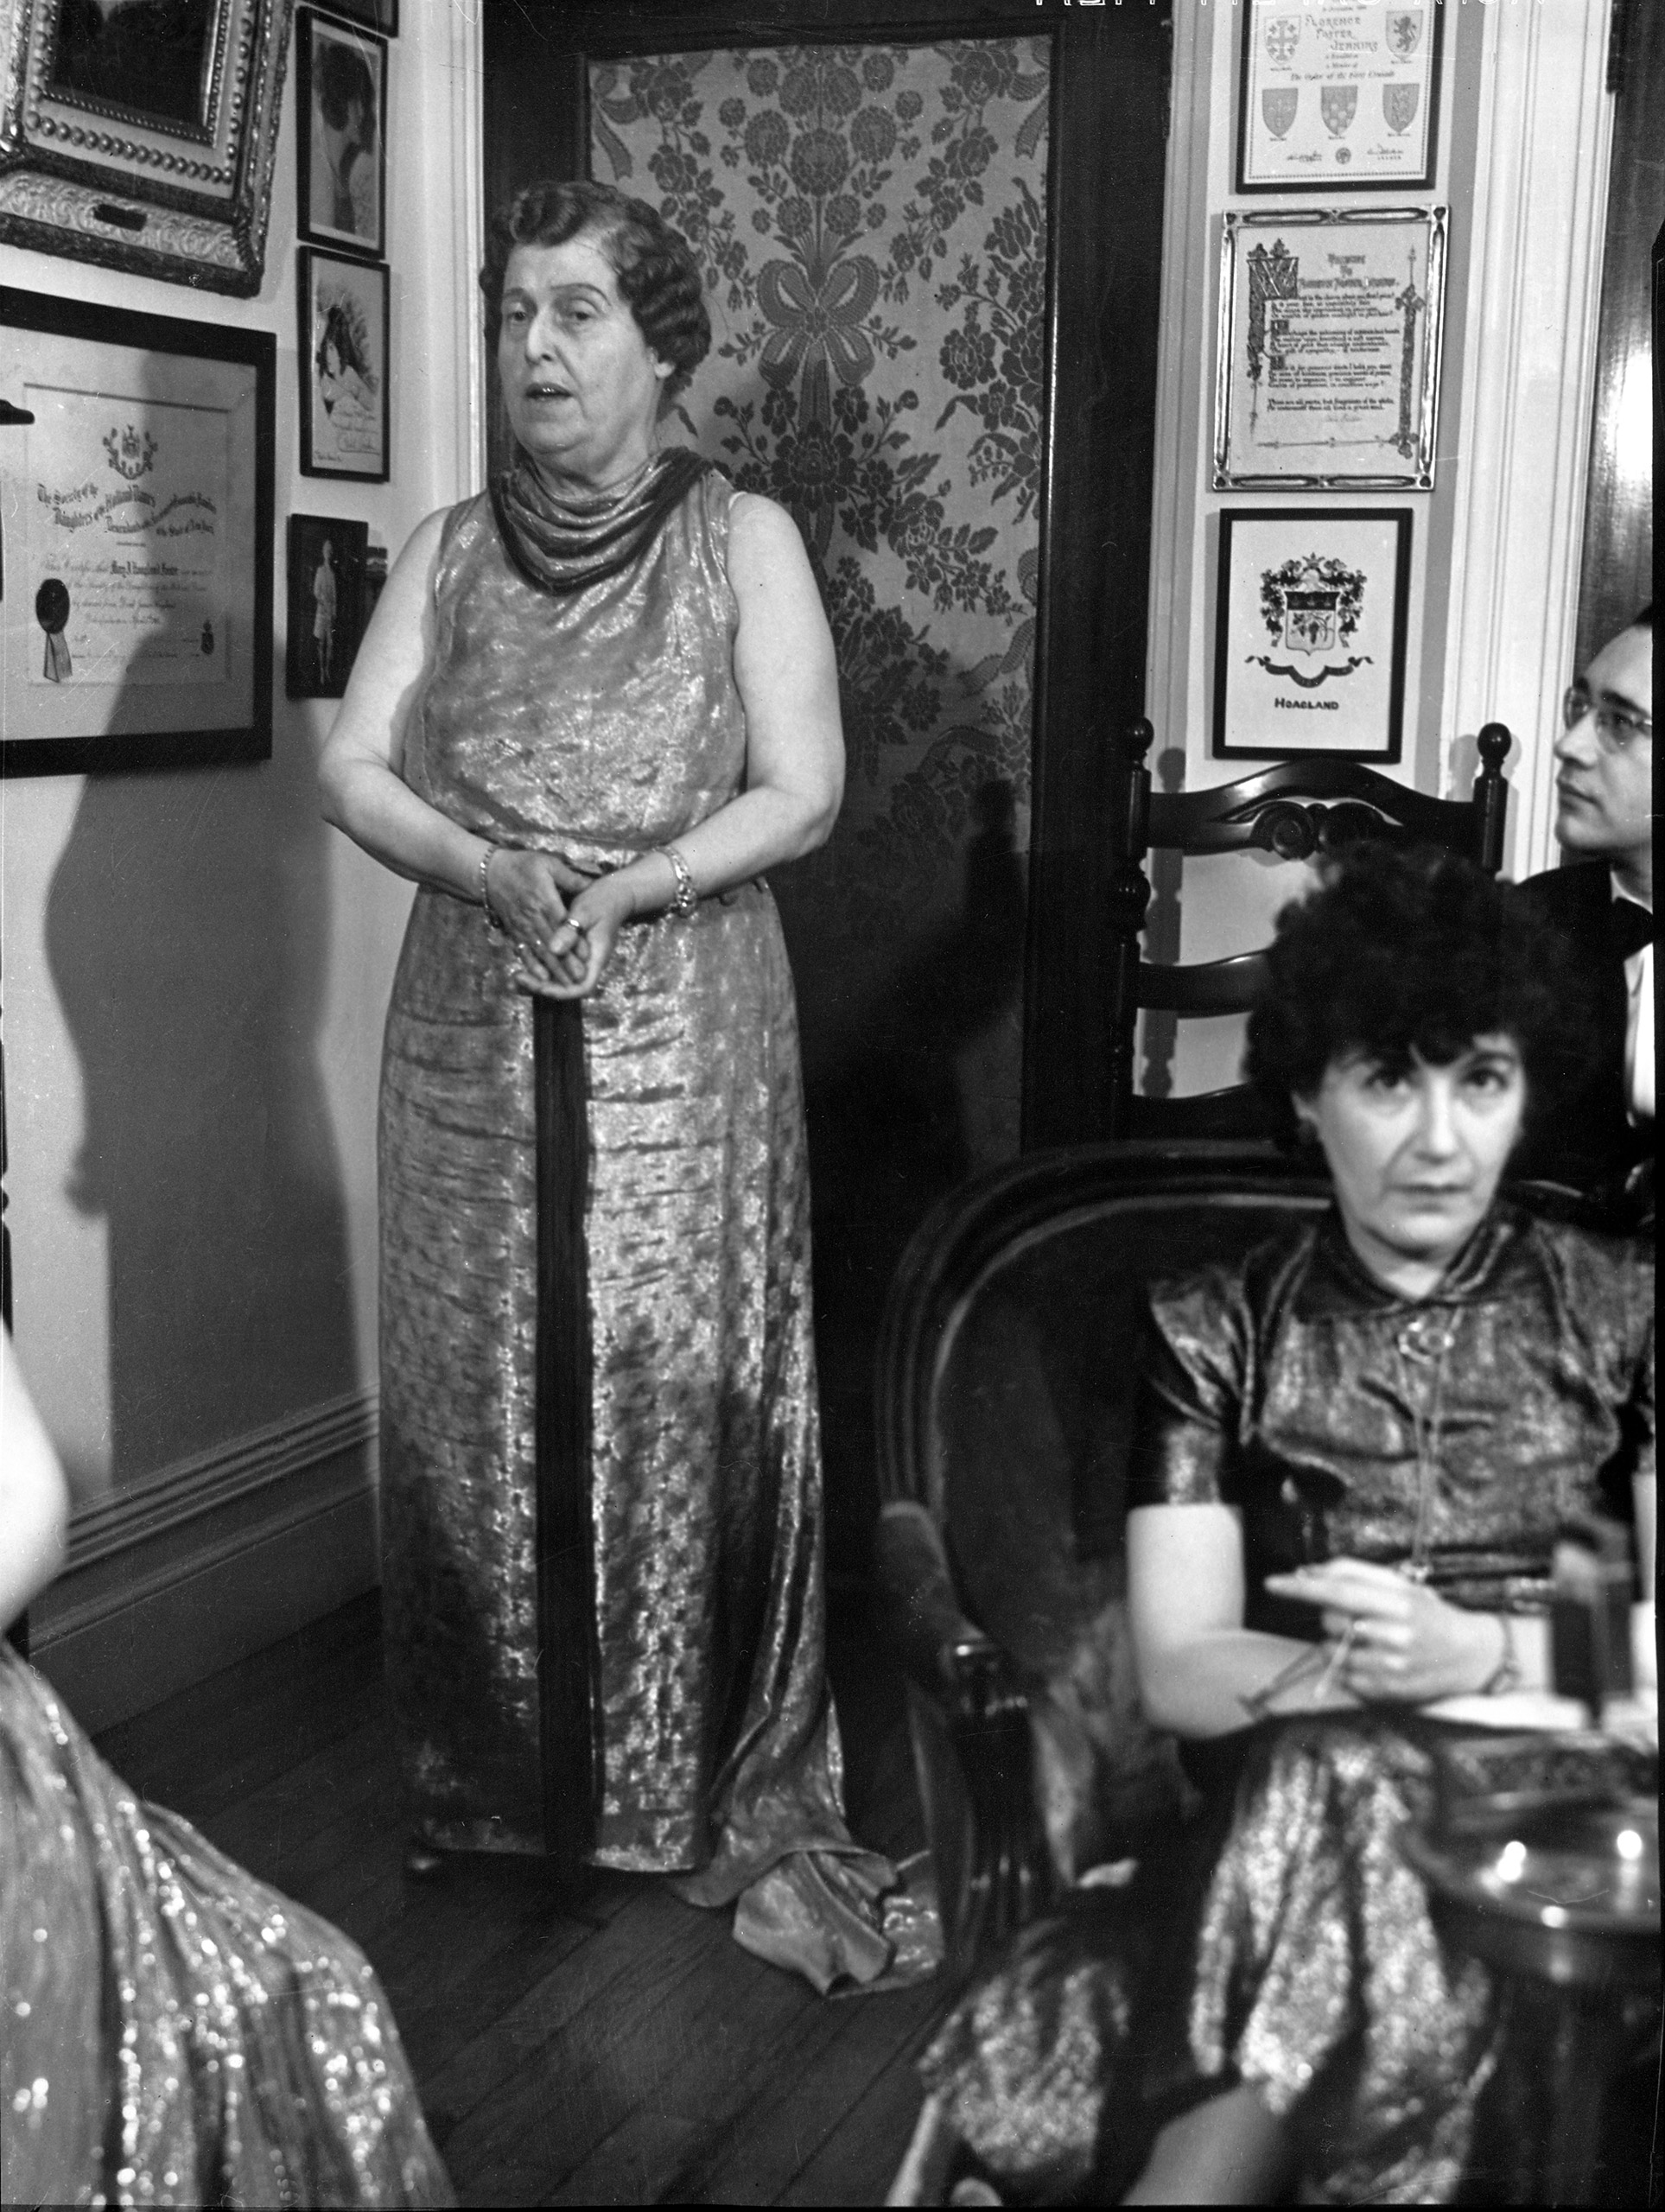 Florence Foster Jenkins (L) entertaining her socialite guests at a formal party in her home in 1937.